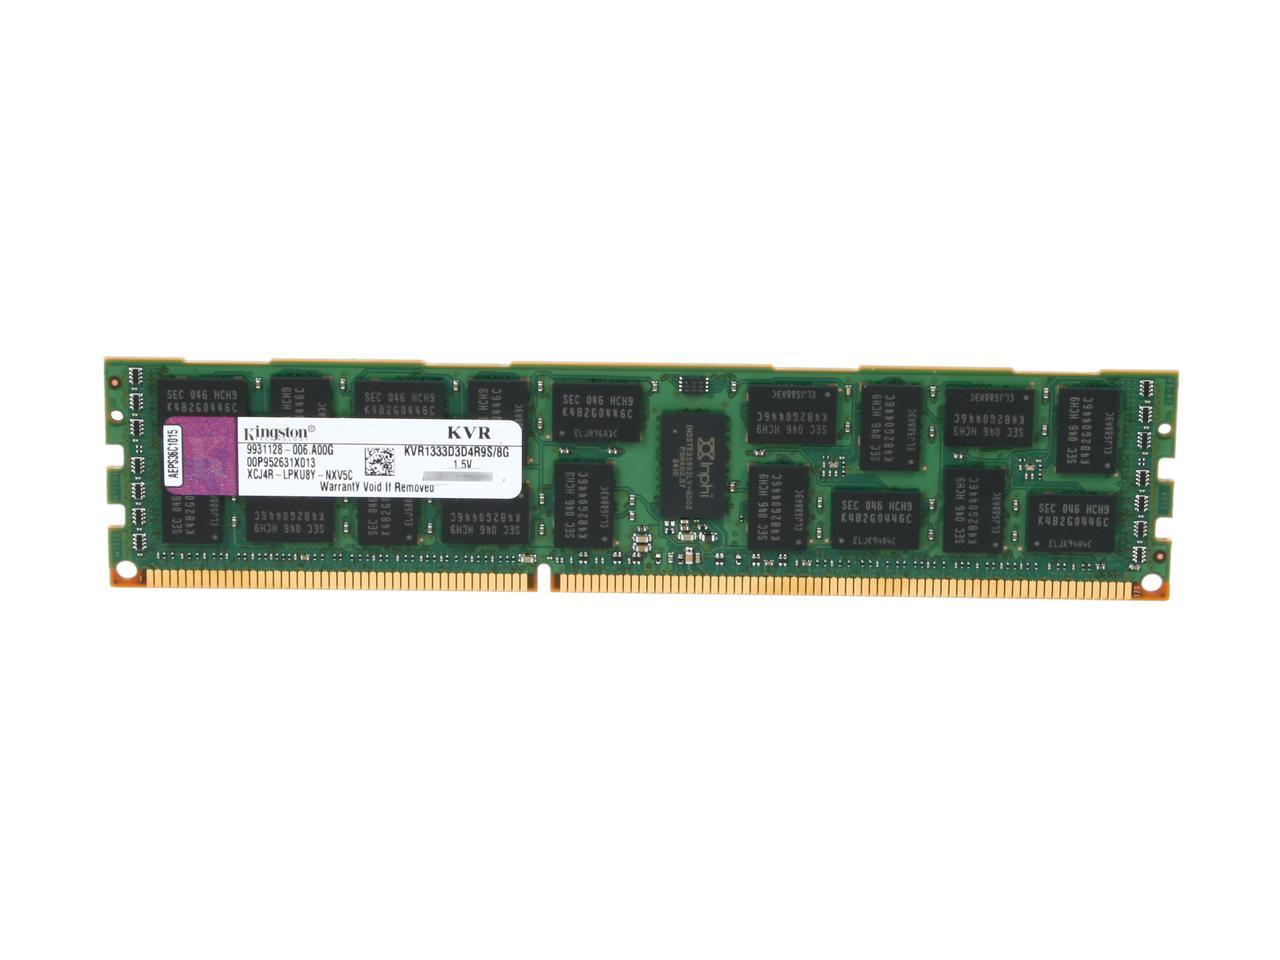 240-Pin DDR3 Udimm RAM Replacement for KVR1333D3N9HK4//32G Arch Memory 32 GB 4 x 8 GB